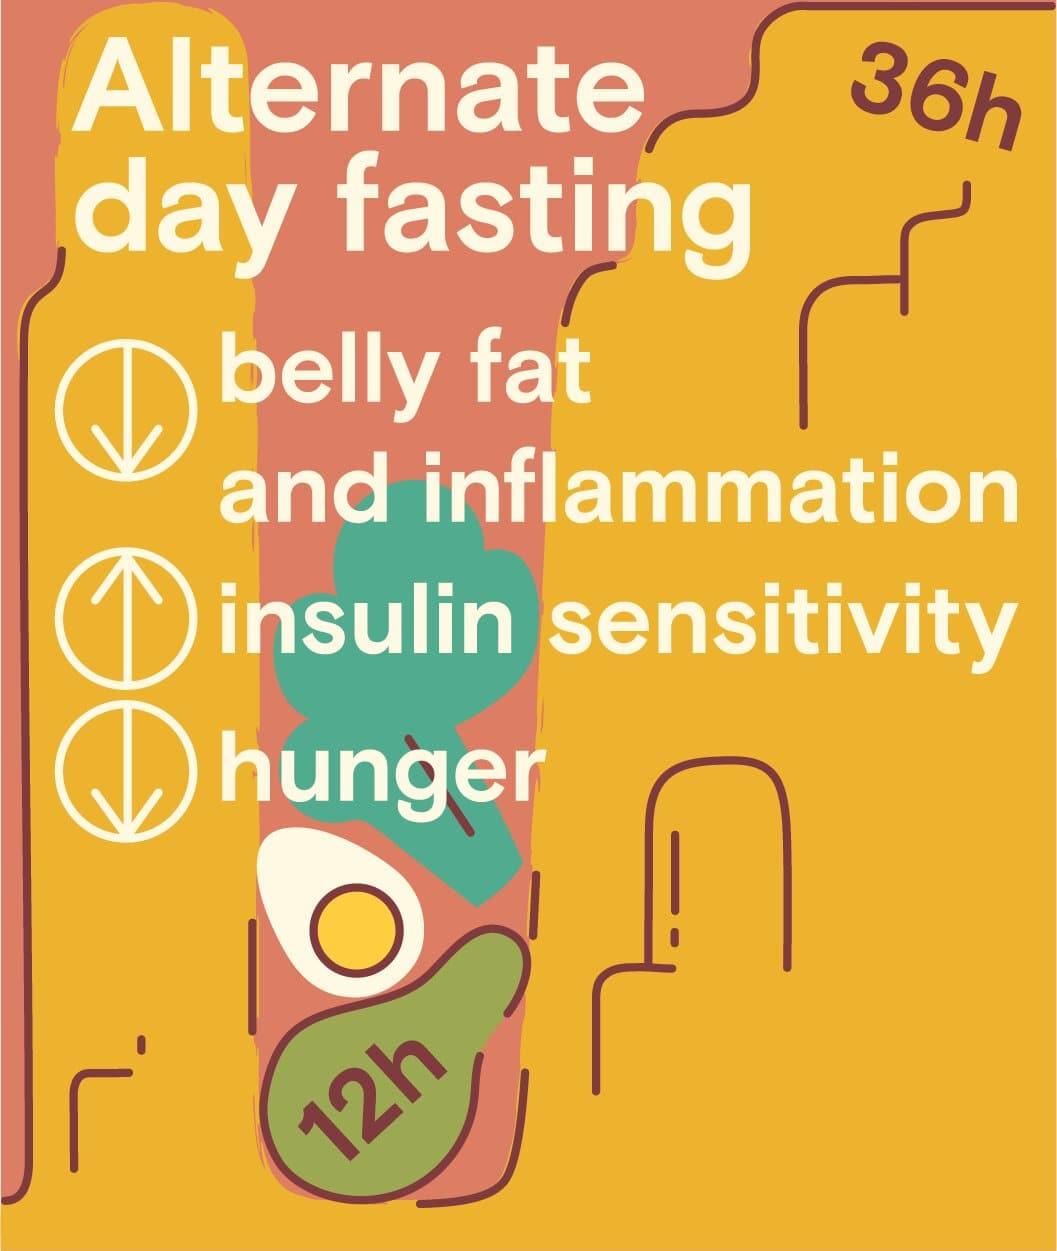 alternated day fasting benefits